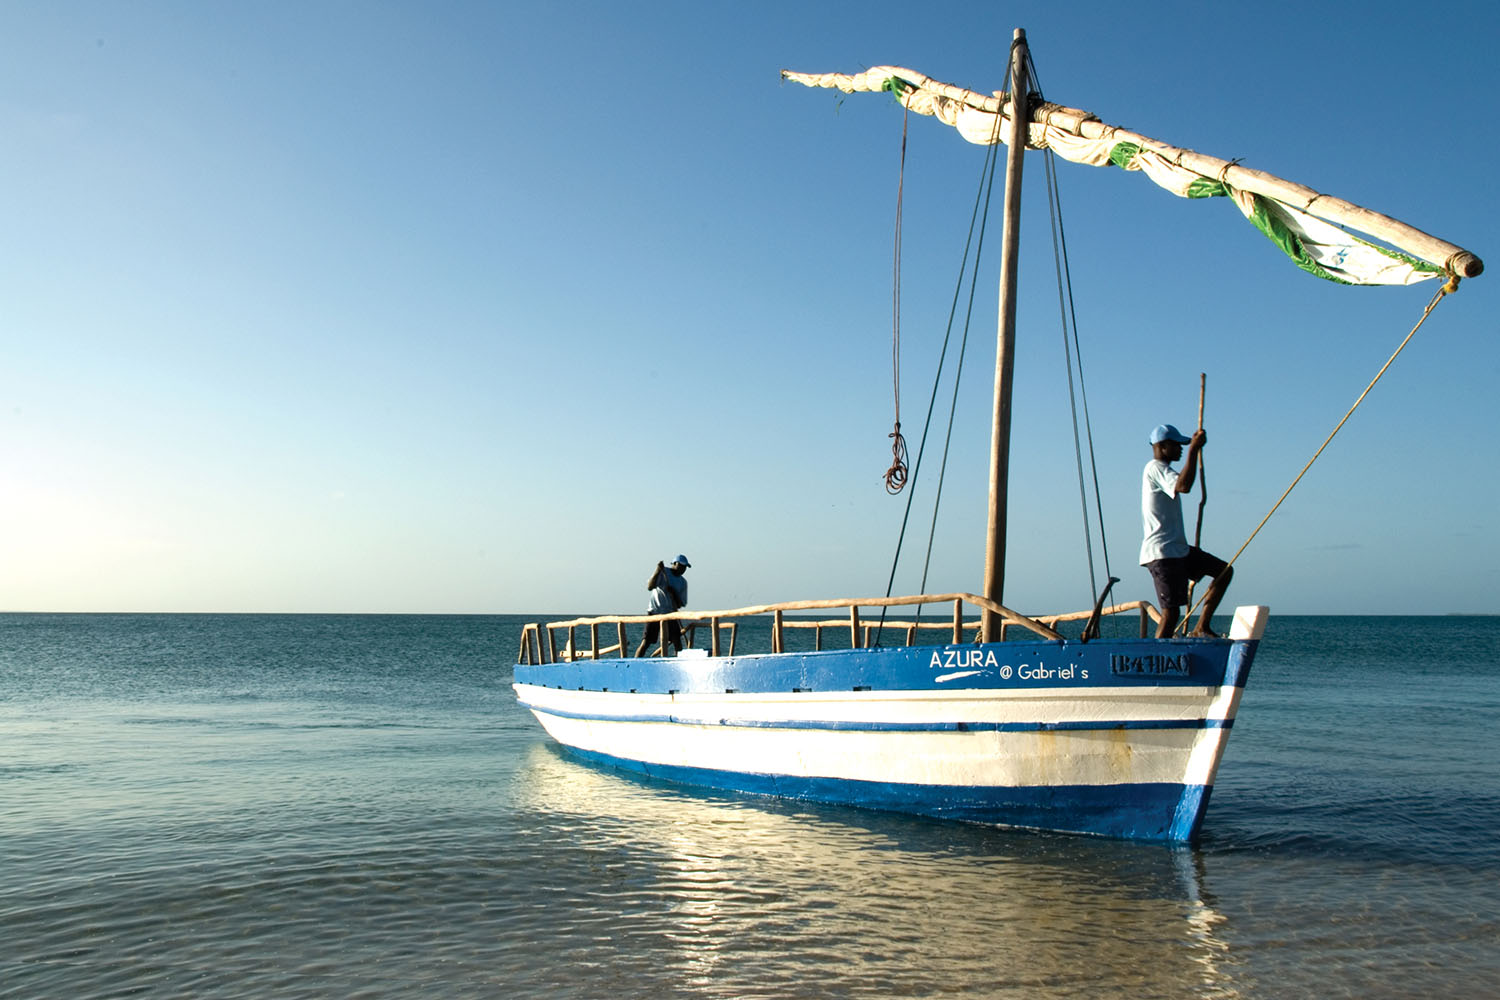 azura benguerra mozambique-lodges-zambia-in-style-safaris-ultimate-beach-experiences-setting-dhow